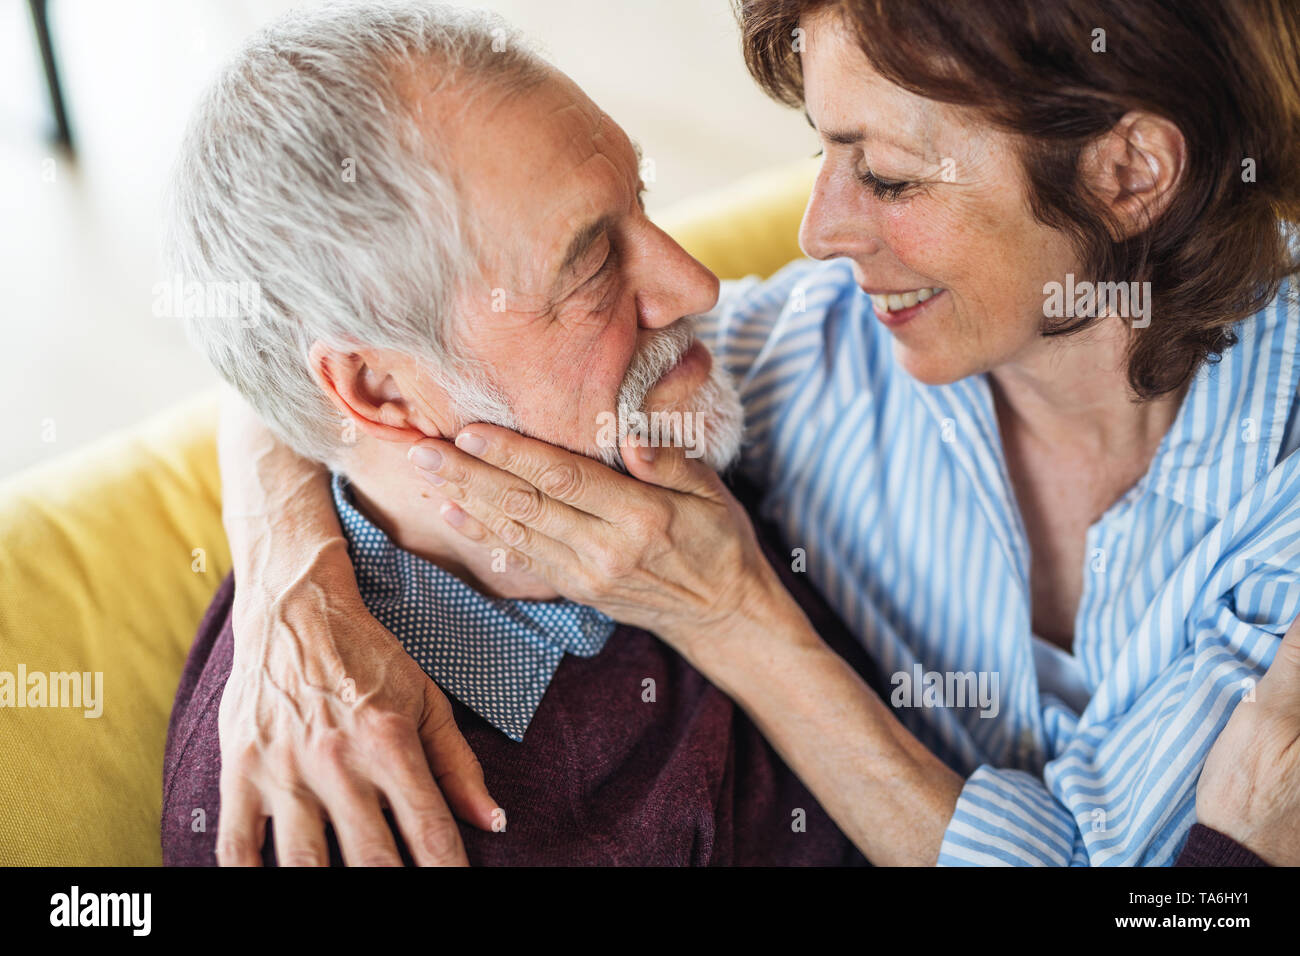 An affectionate senior couple in love sitting on sofa indoors at home. - Stock Image